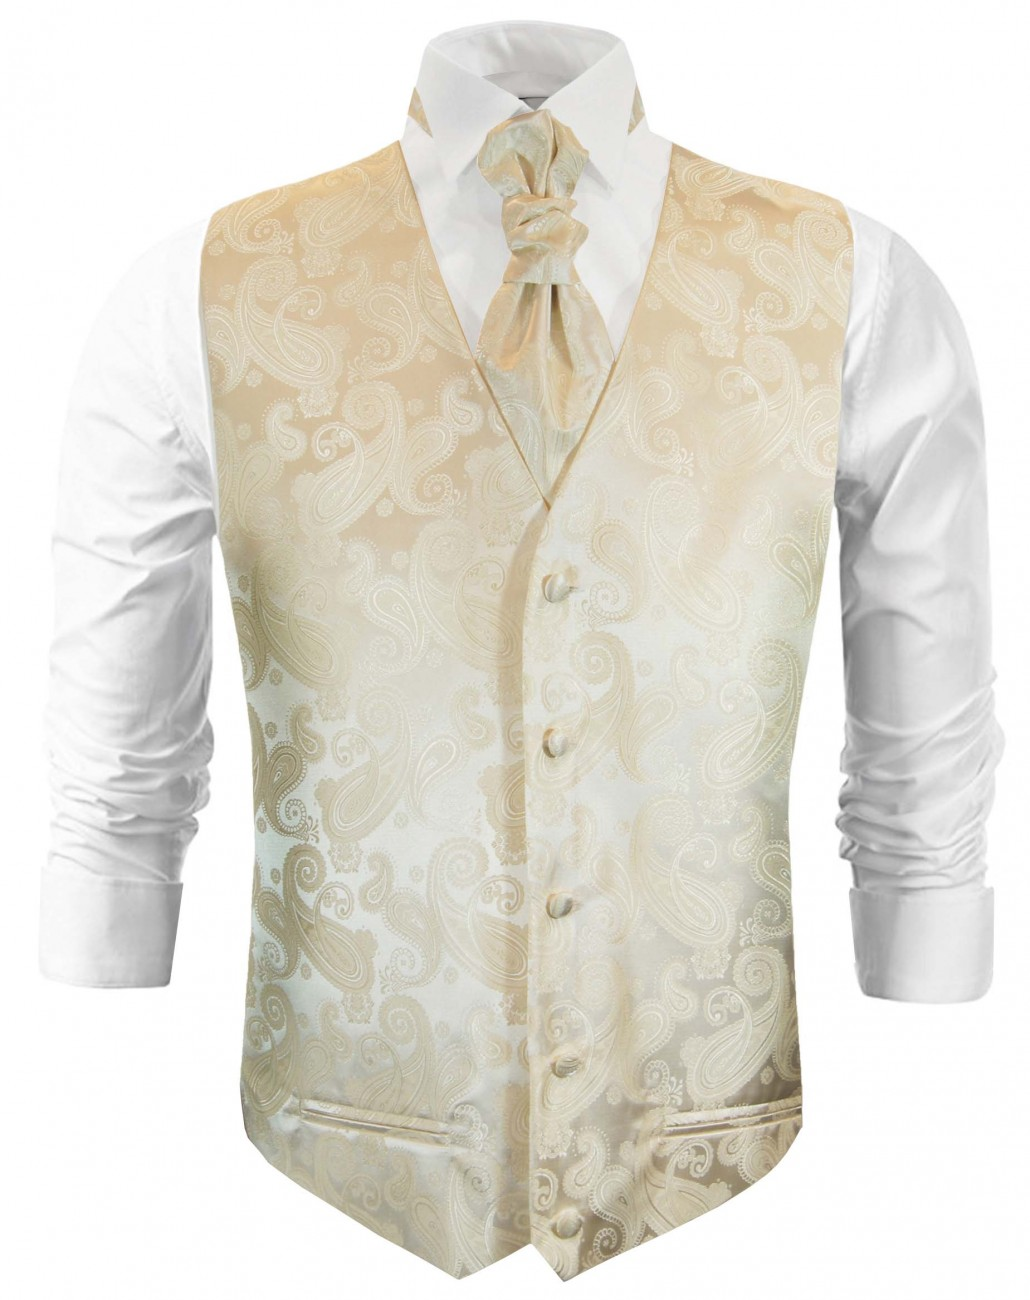 Cream wedding vest paisley waistcoat with cravat